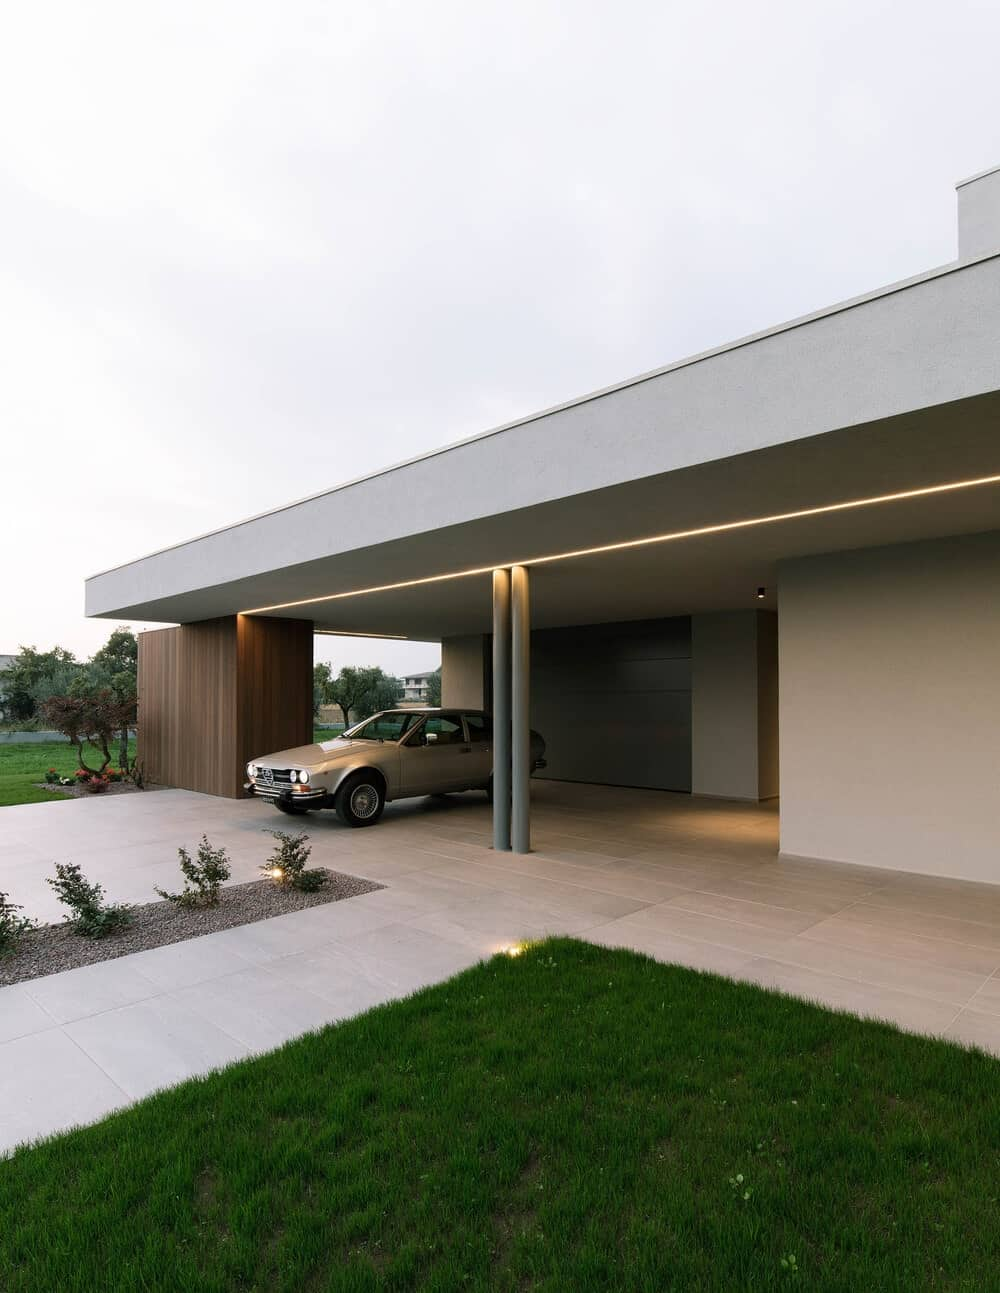 This is a close look at the main entrance of the house by the car port with a walkway by the grass lawn.